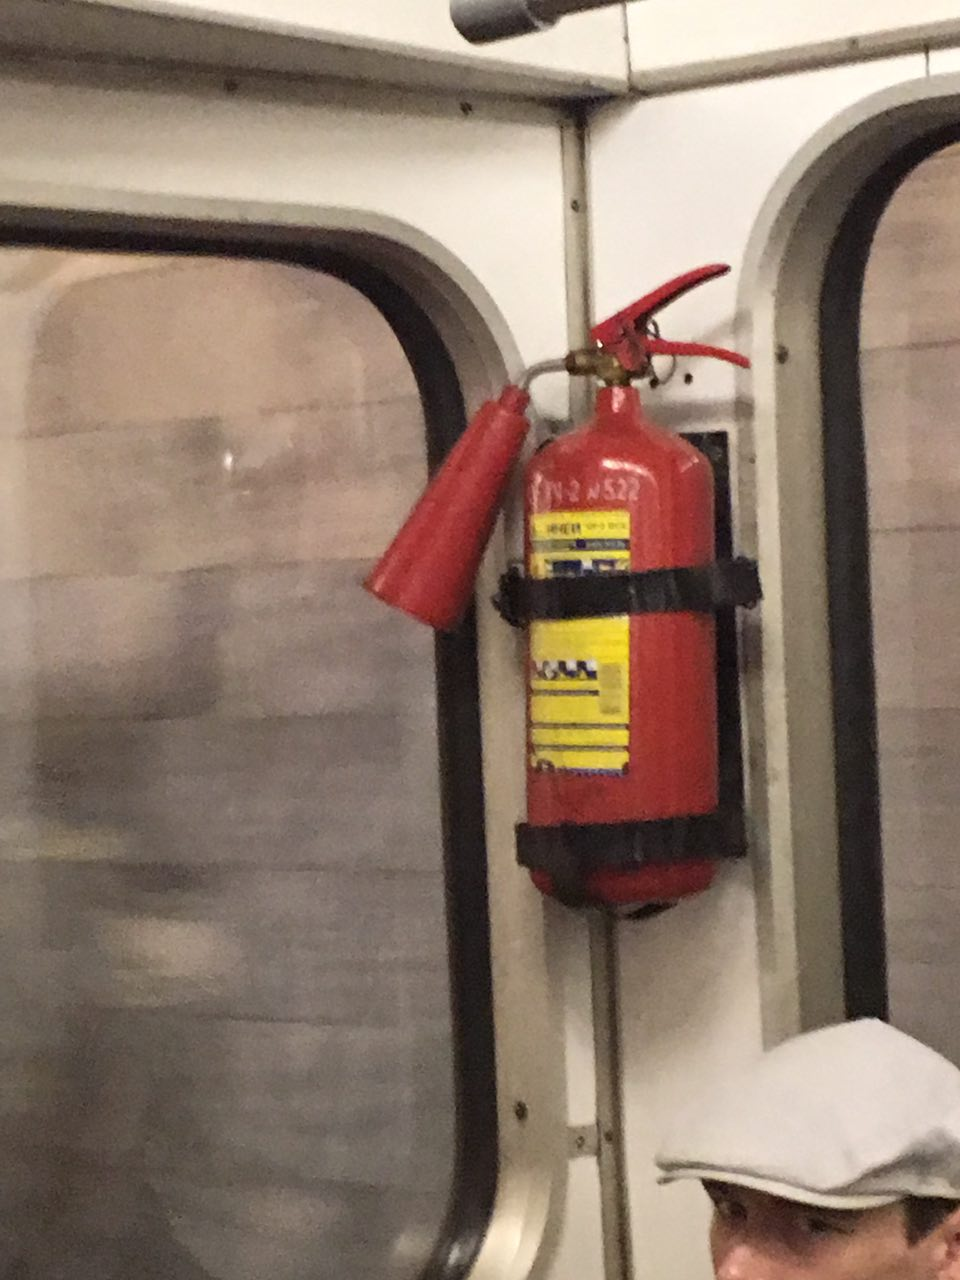 moscow russia metro fire extinguisher, moscow russia subway fire extinguisher